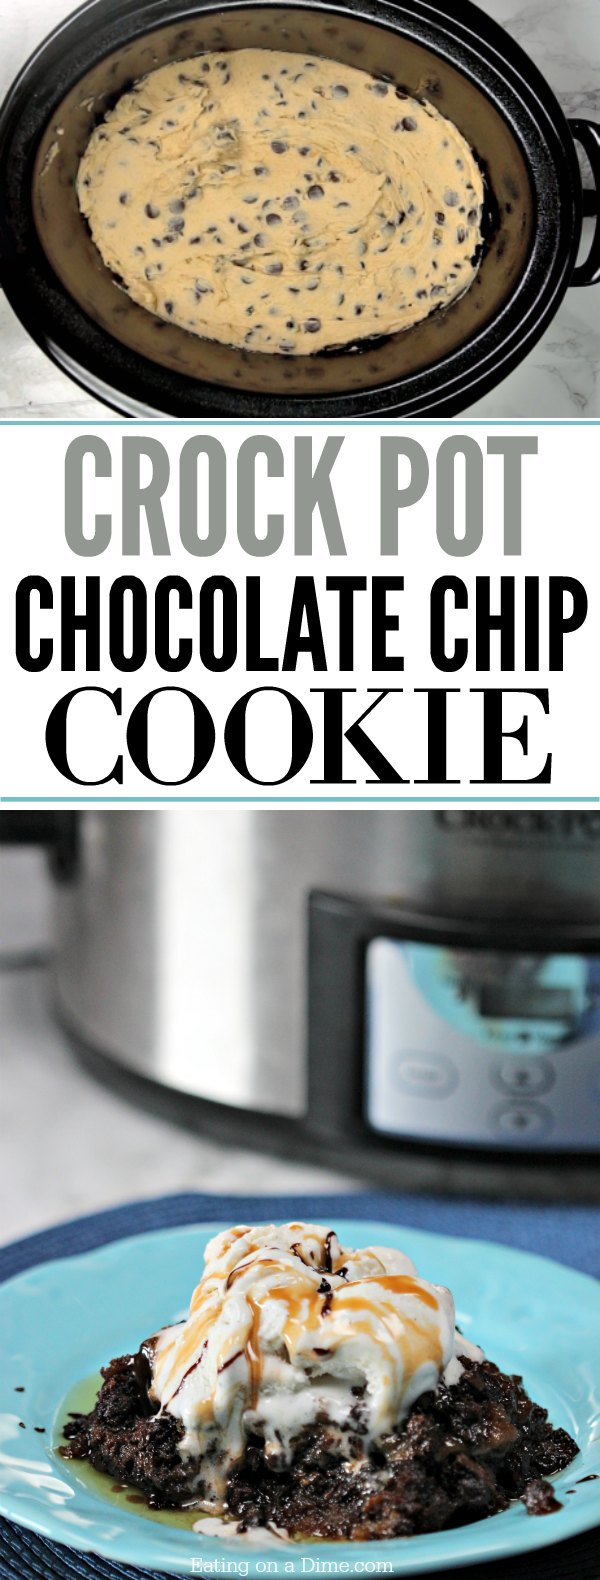 Crock Pot Chocolate Chip Cookie Recipe - Easy Crock pot dessert!